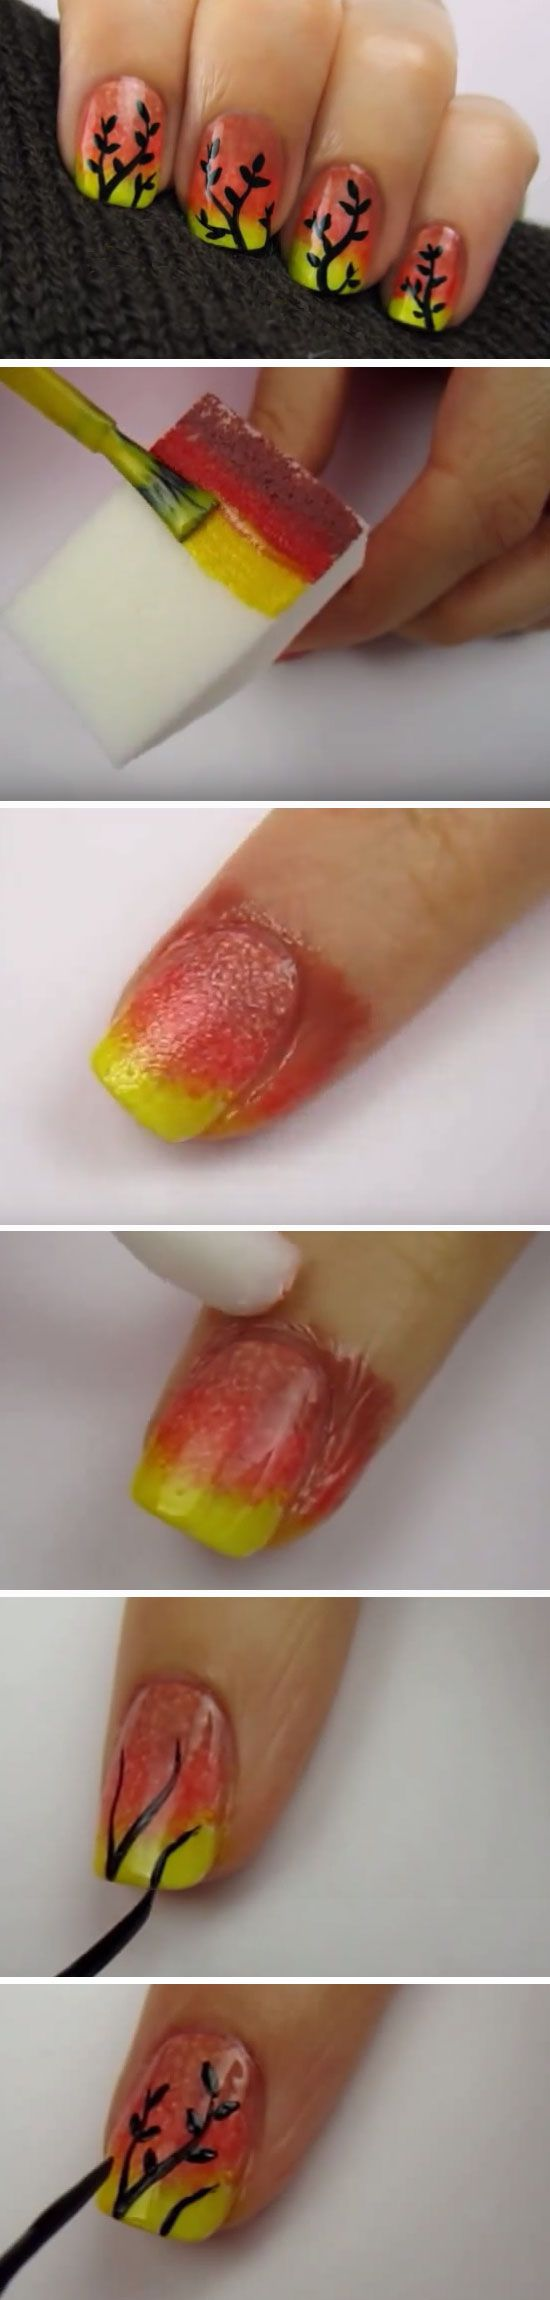 22 Easy Fall Nail Designs for Short Nails | Ombre nail art, Short ...